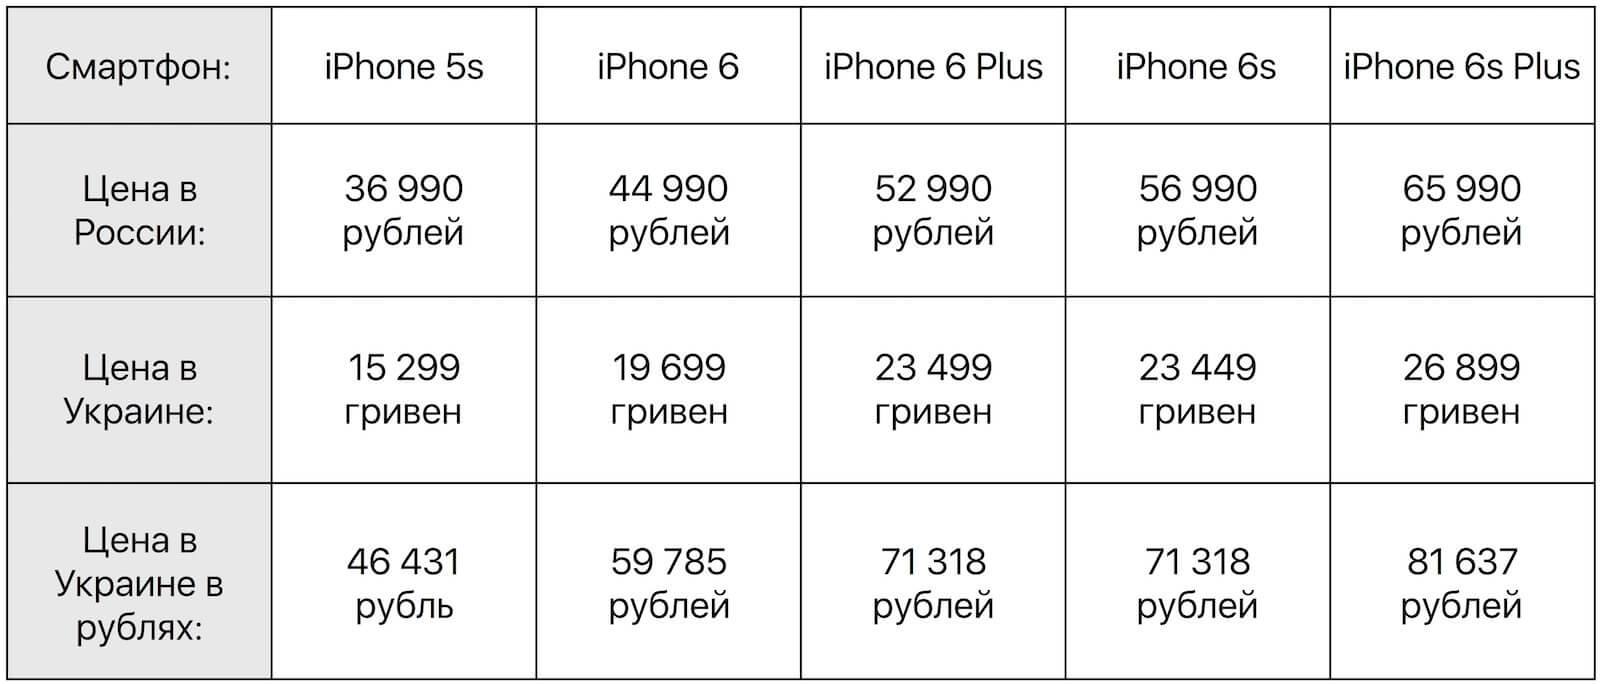 Russia Ukraine Apple iPhone 5s iPhone 6 iPhone 6 Plus iPhone 6s iPhone 6s Plus review